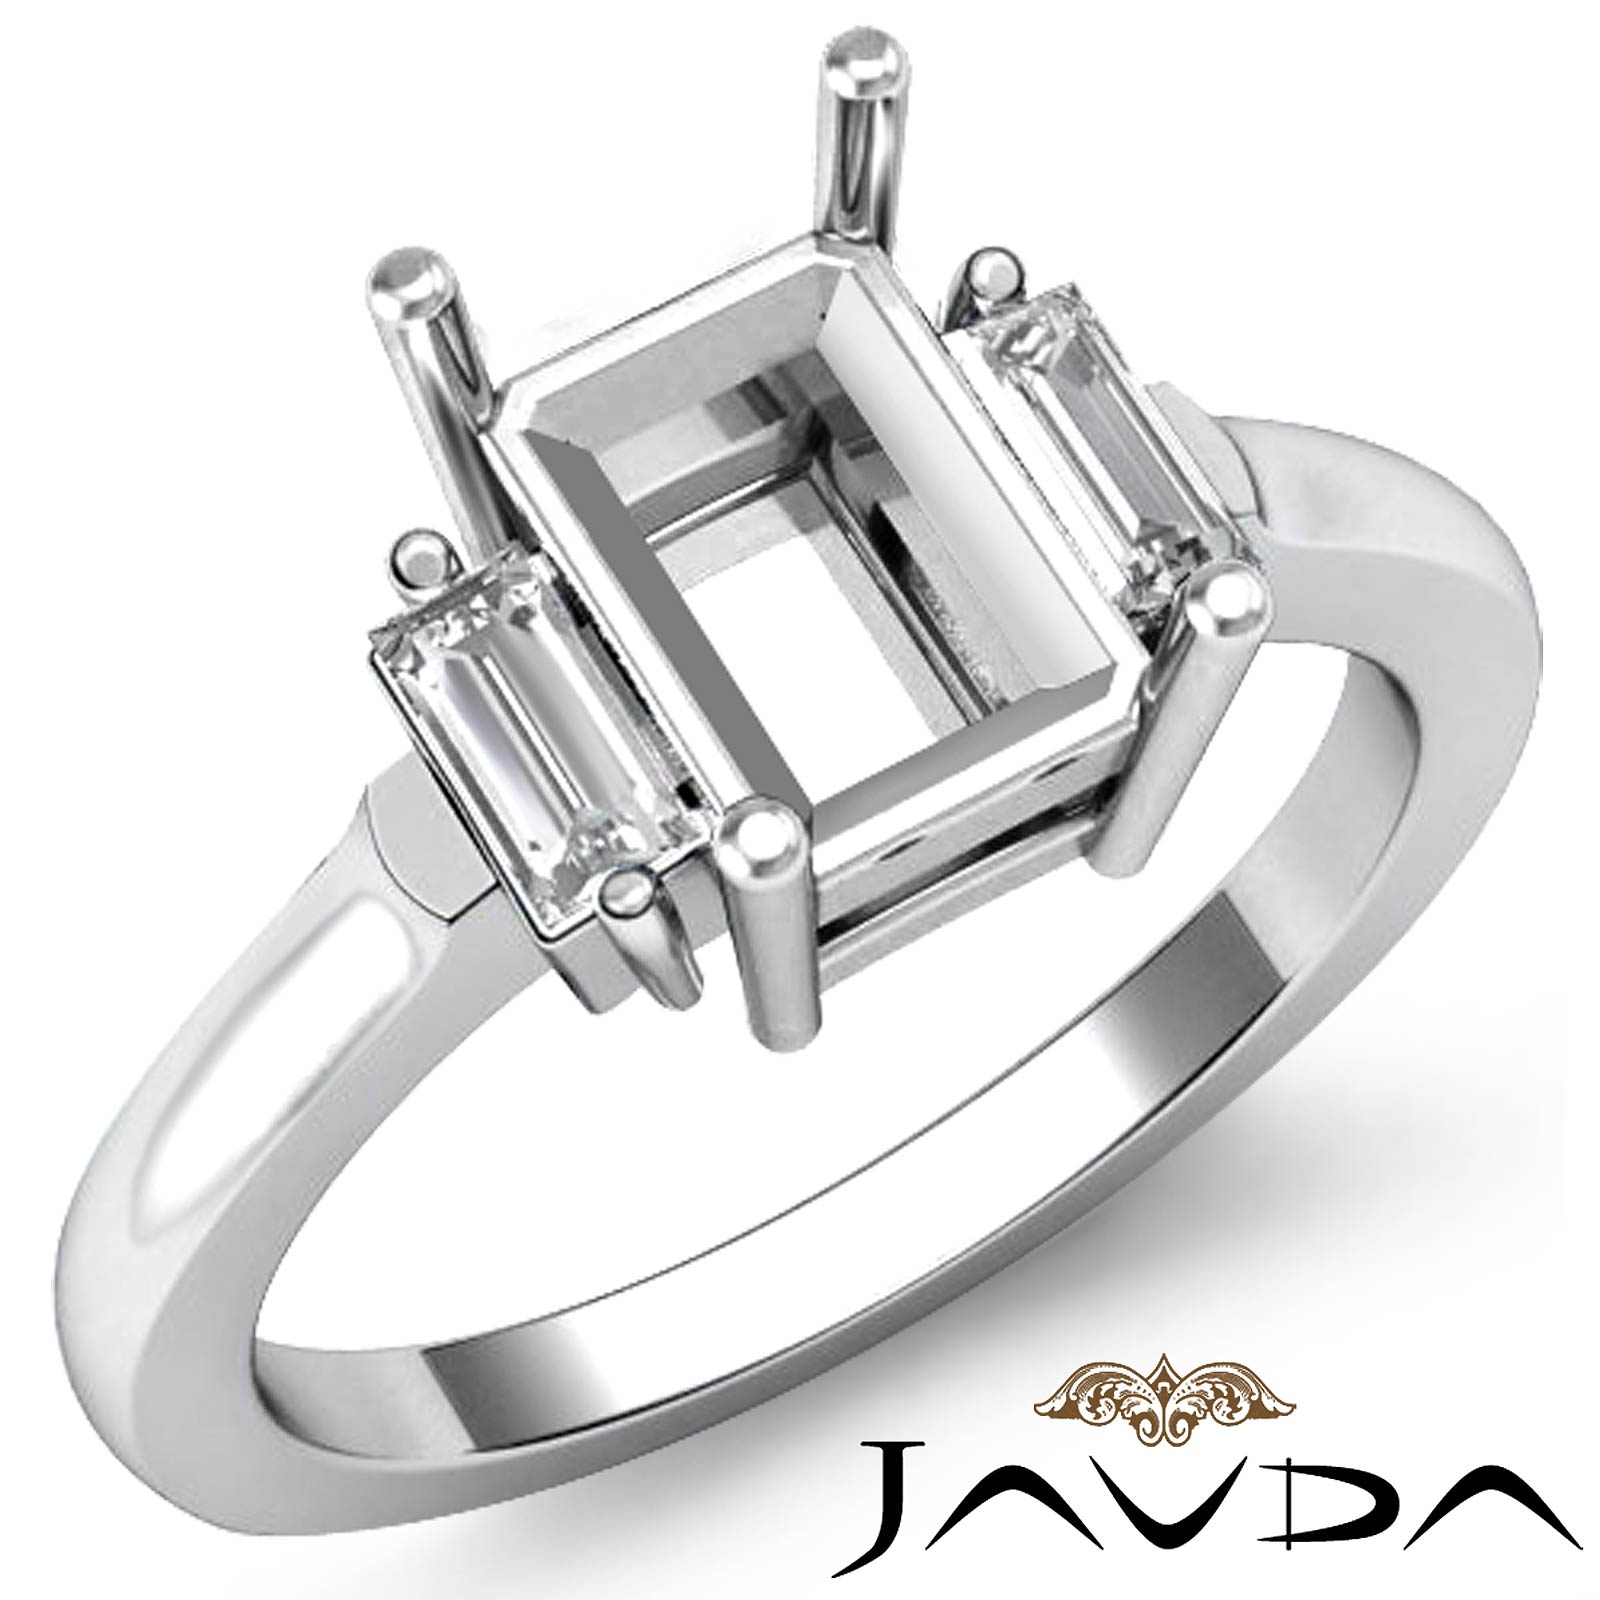 1//4ct Diamond Engagement Ring Setting 14k White Gold 4Prong Semi Mount Solitaire